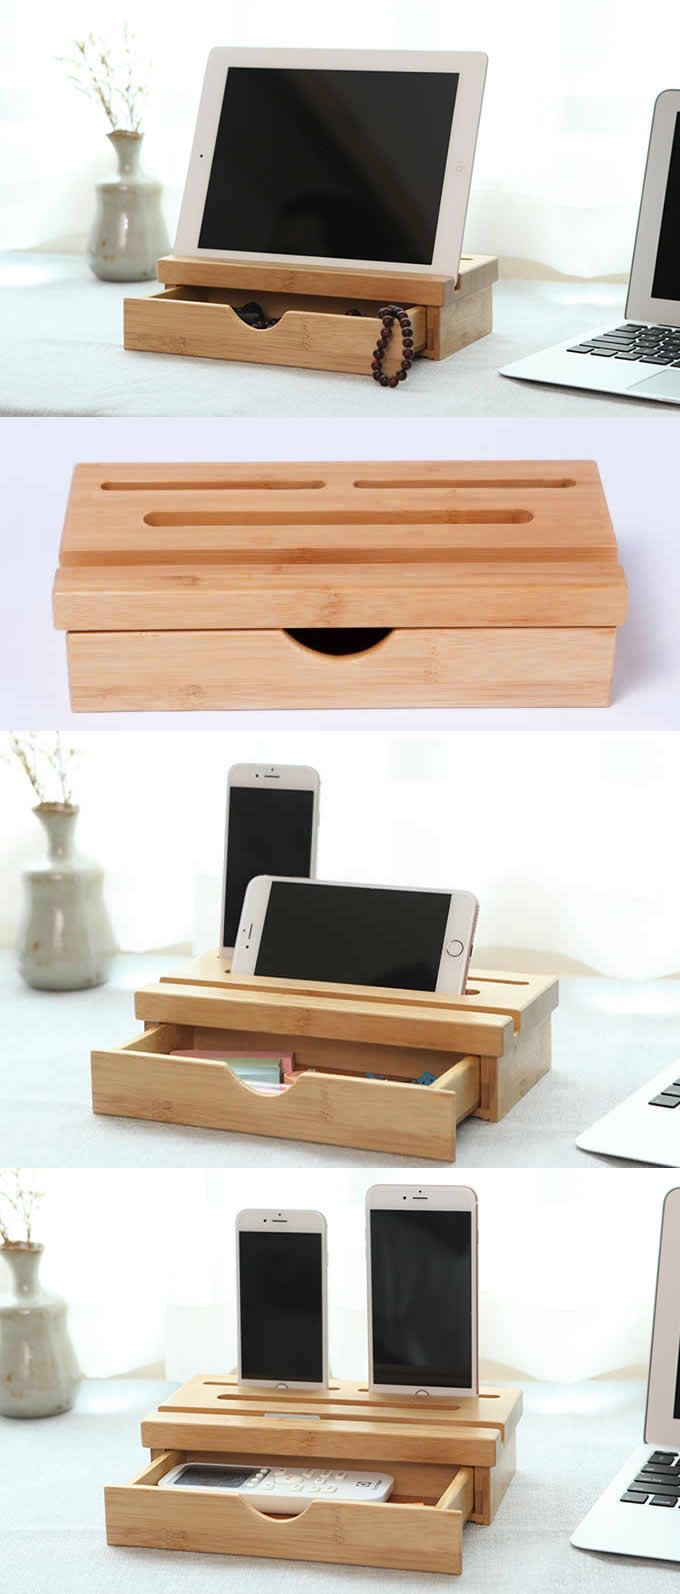 Wooden Bamboo Stationery Drawer Organizer iPad Phone Stand Holder Stand Pen Pencil Holder Stand to organizer your office supplies